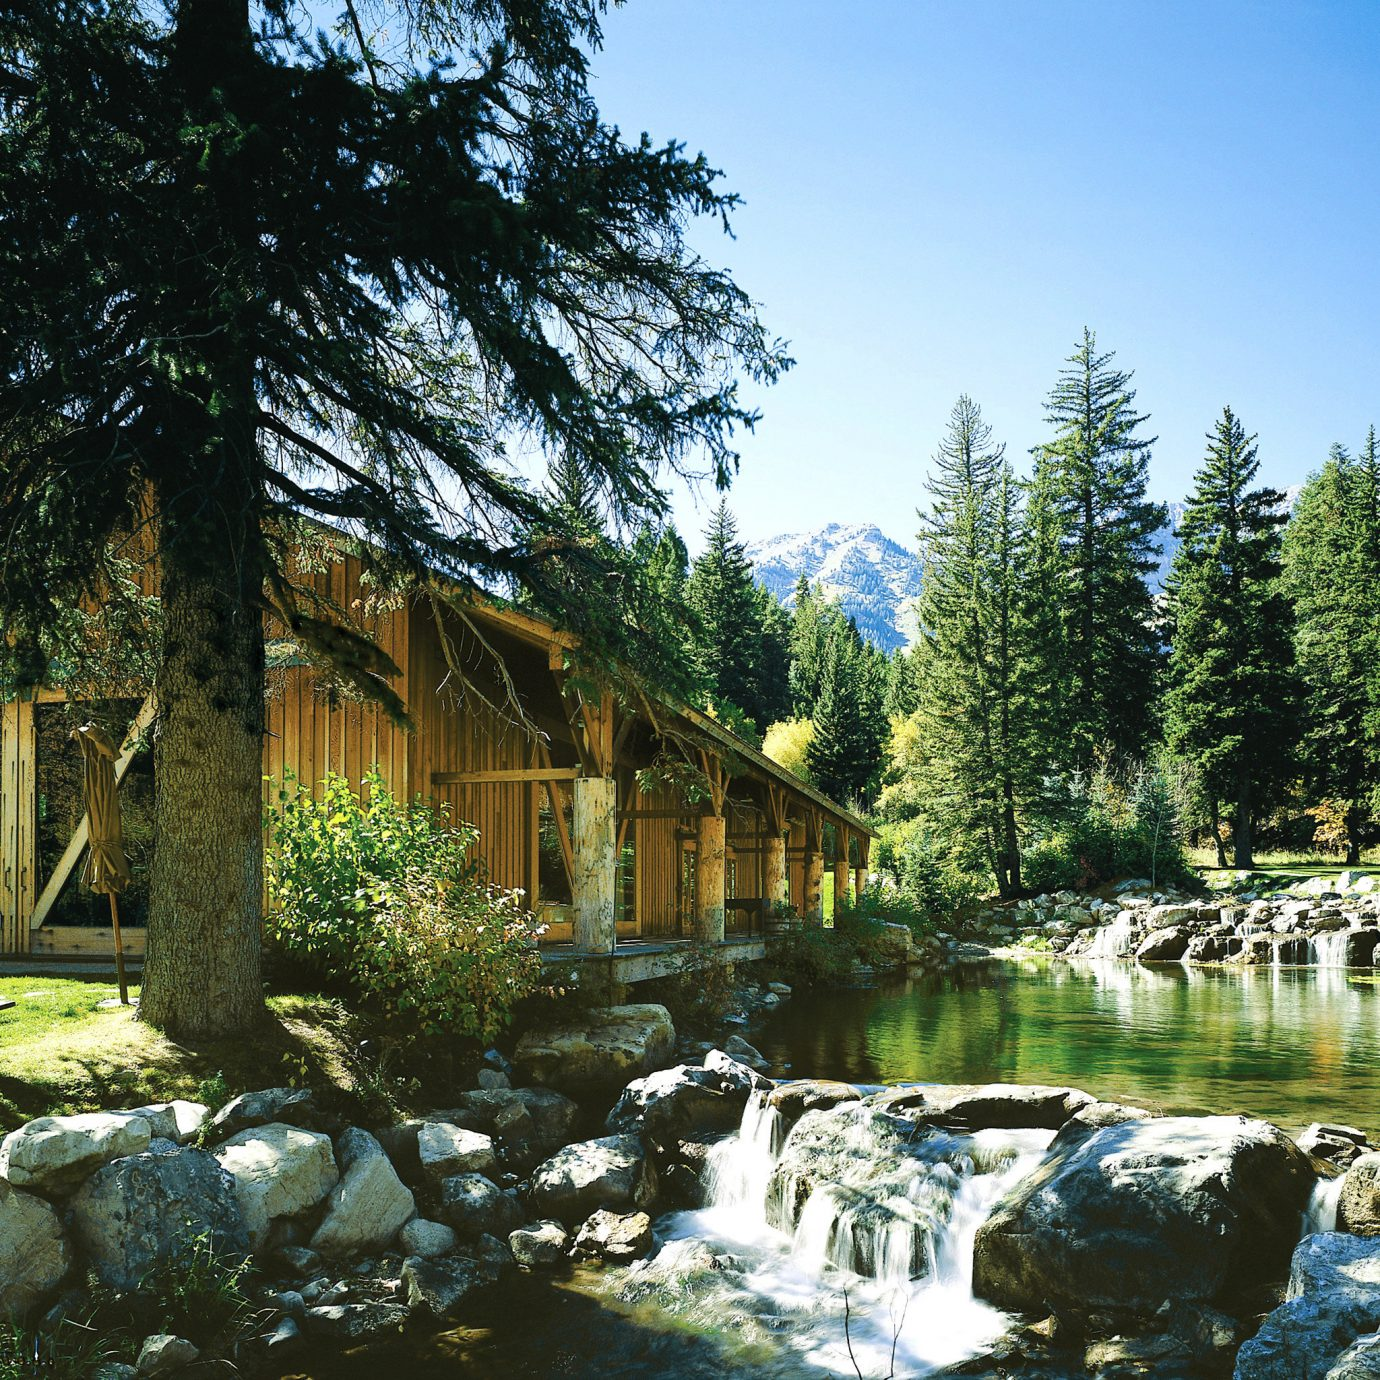 Grounds Mountains Outdoors Scenic views Wildlife tree Garden pond River woodland stream backyard flower plant surrounded stone